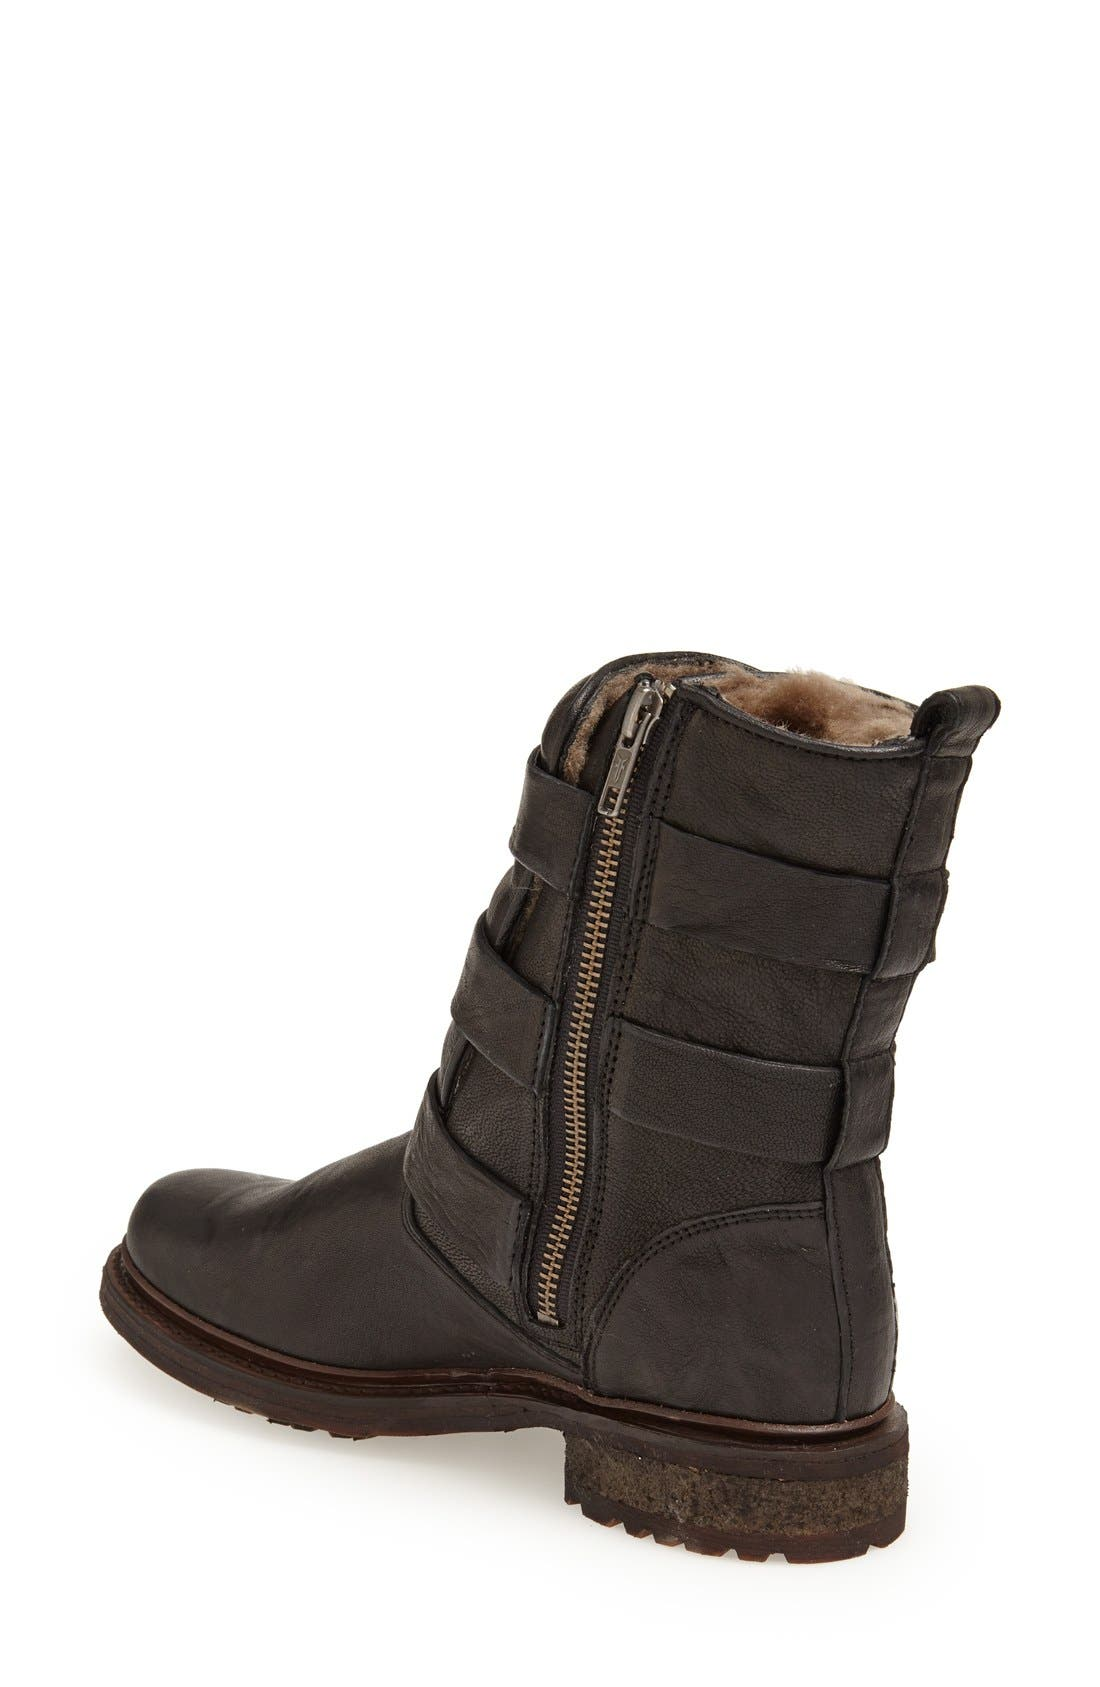 'Valerie' Shearling Lined Strappy Boot,                             Alternate thumbnail 2, color,                             001